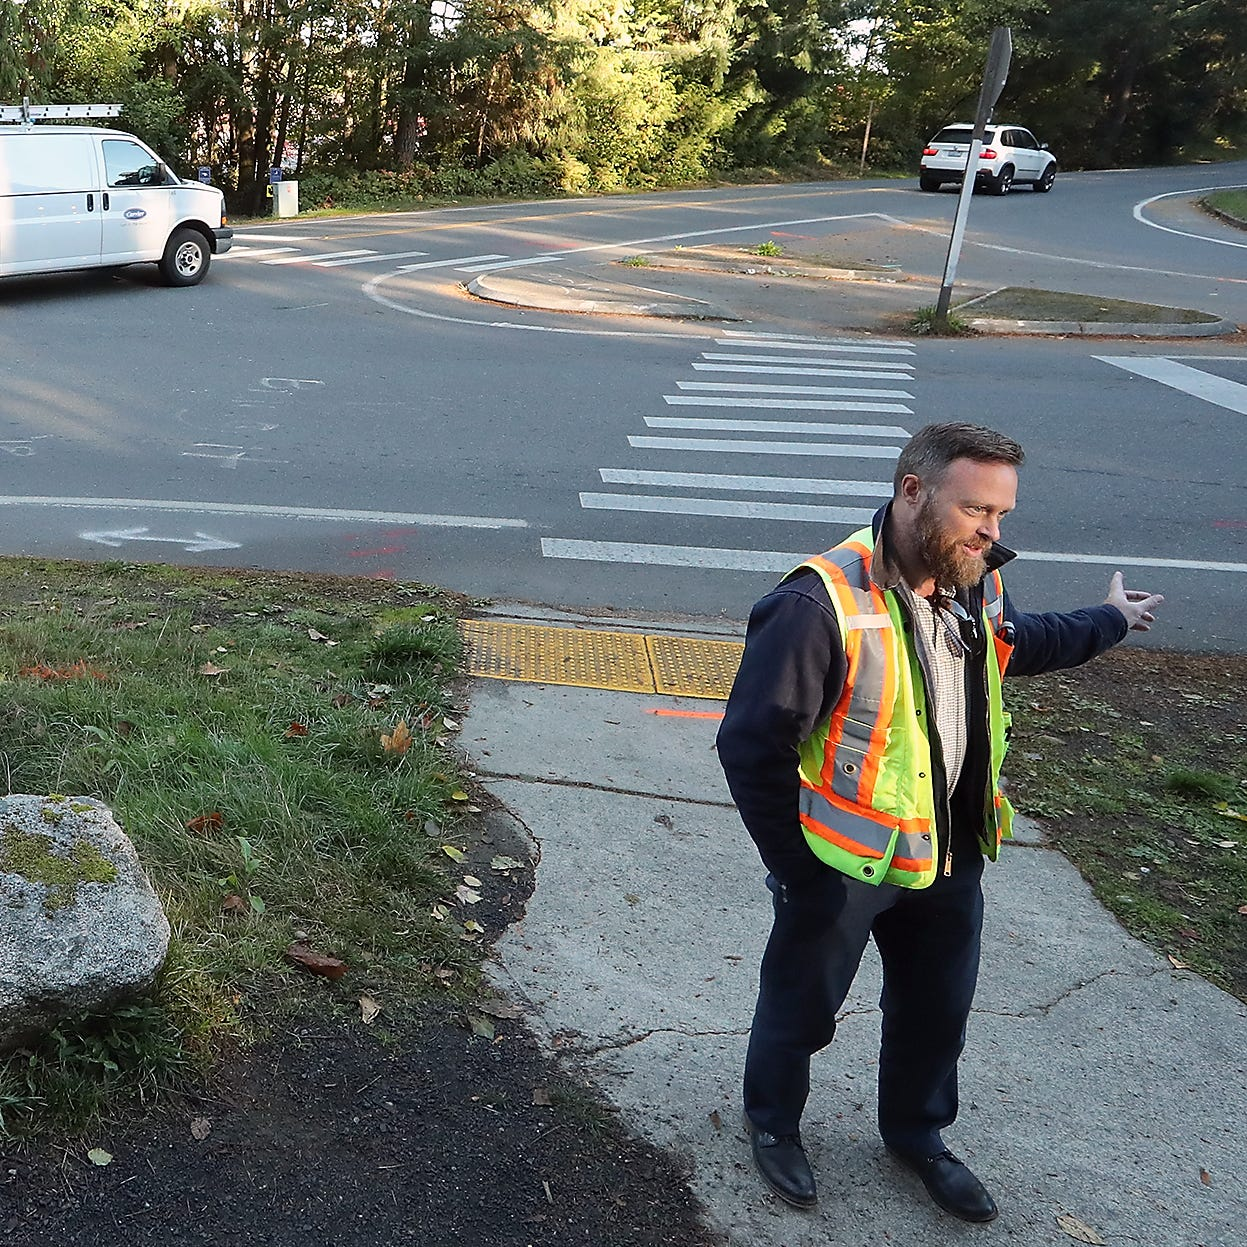 Bainbridge Island considers roundabout on Sportsman Club Road